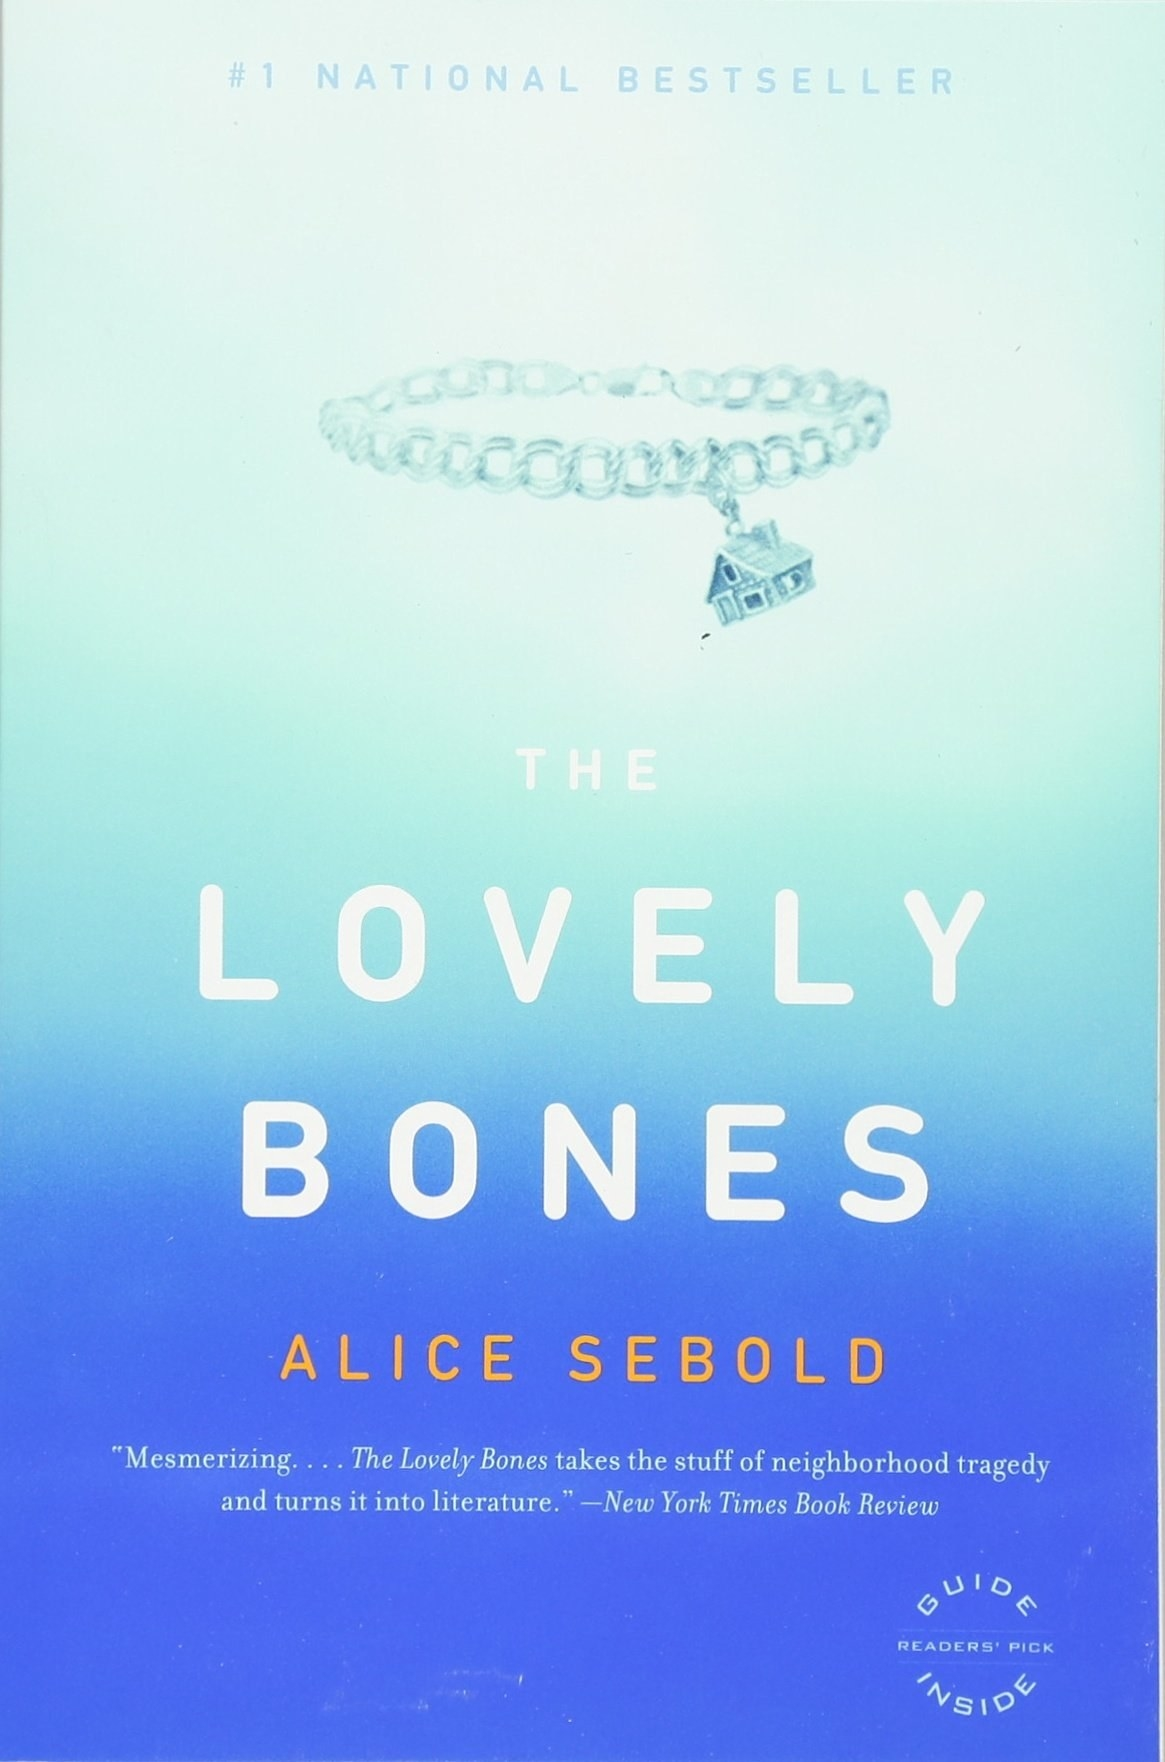 the cover of the lovely bones by Alice sebold